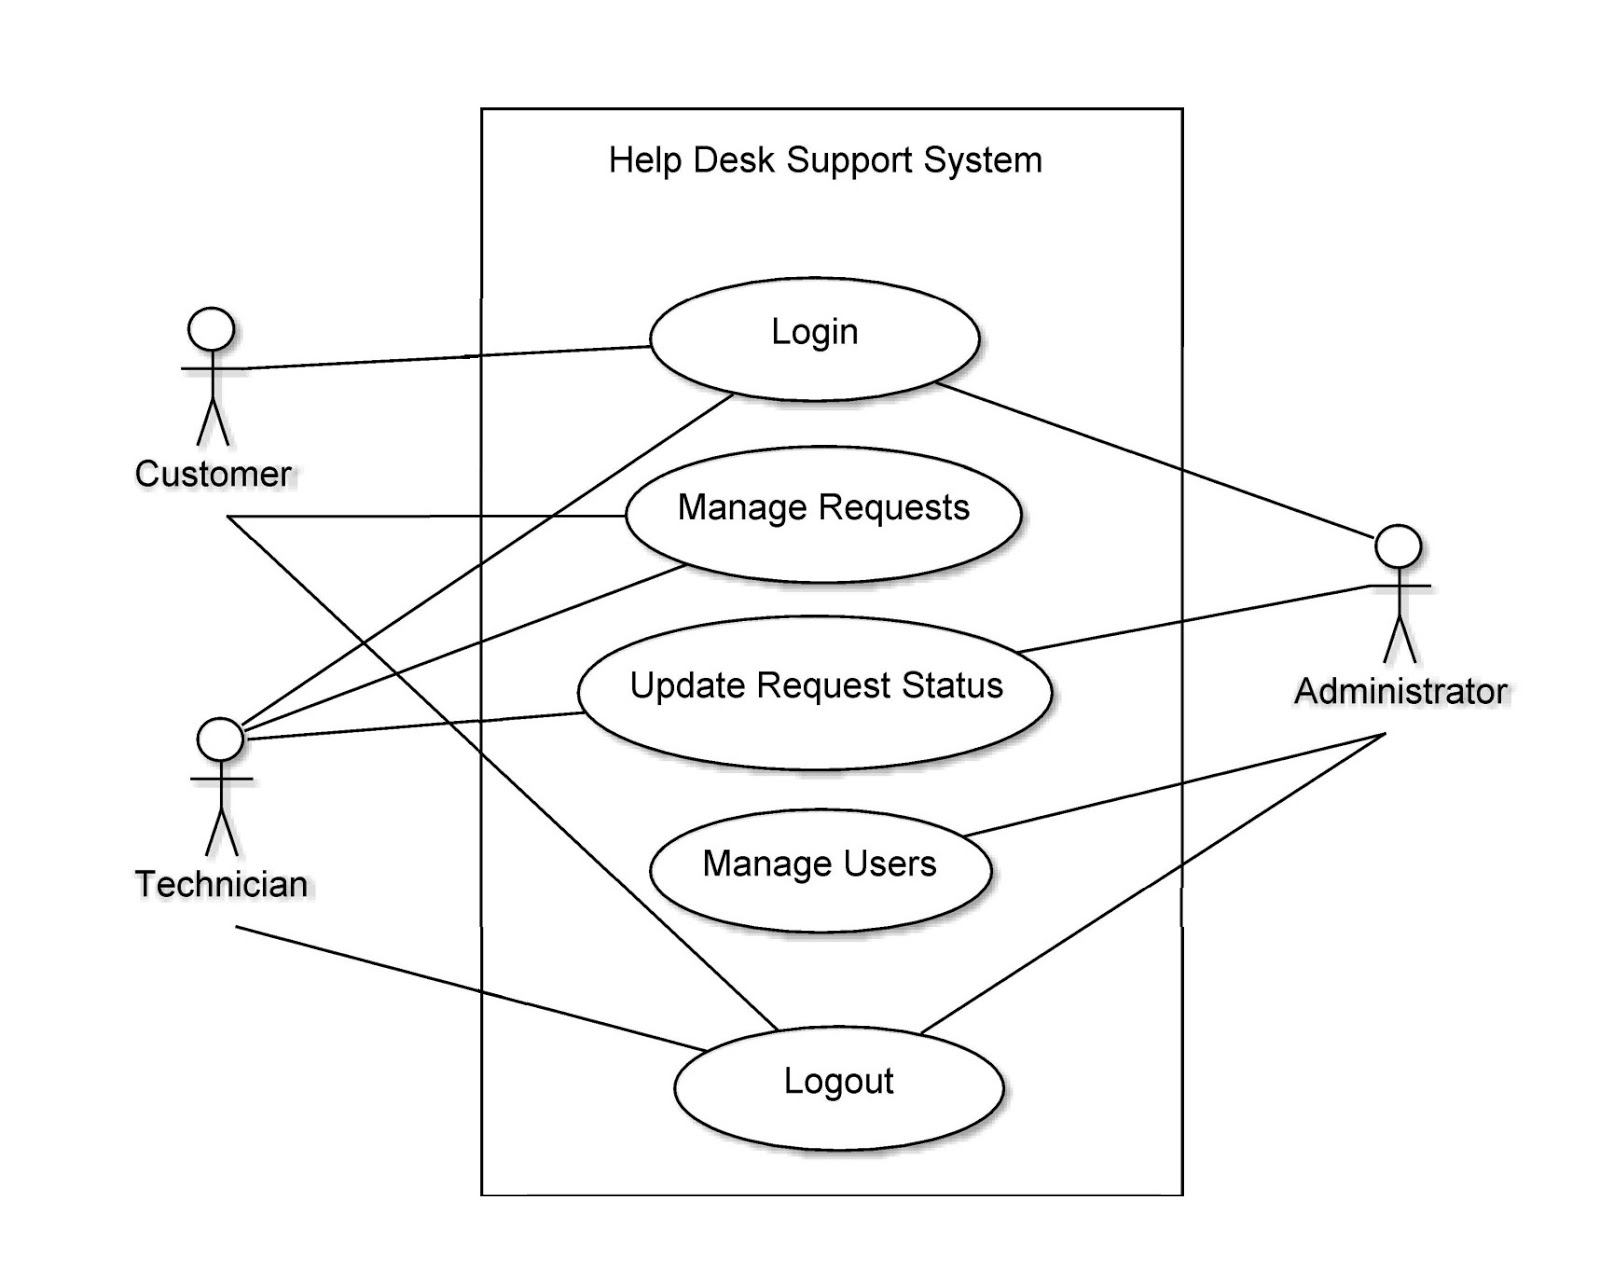 use case diagram library management system general electric stove wiring computer science assignments help desk support